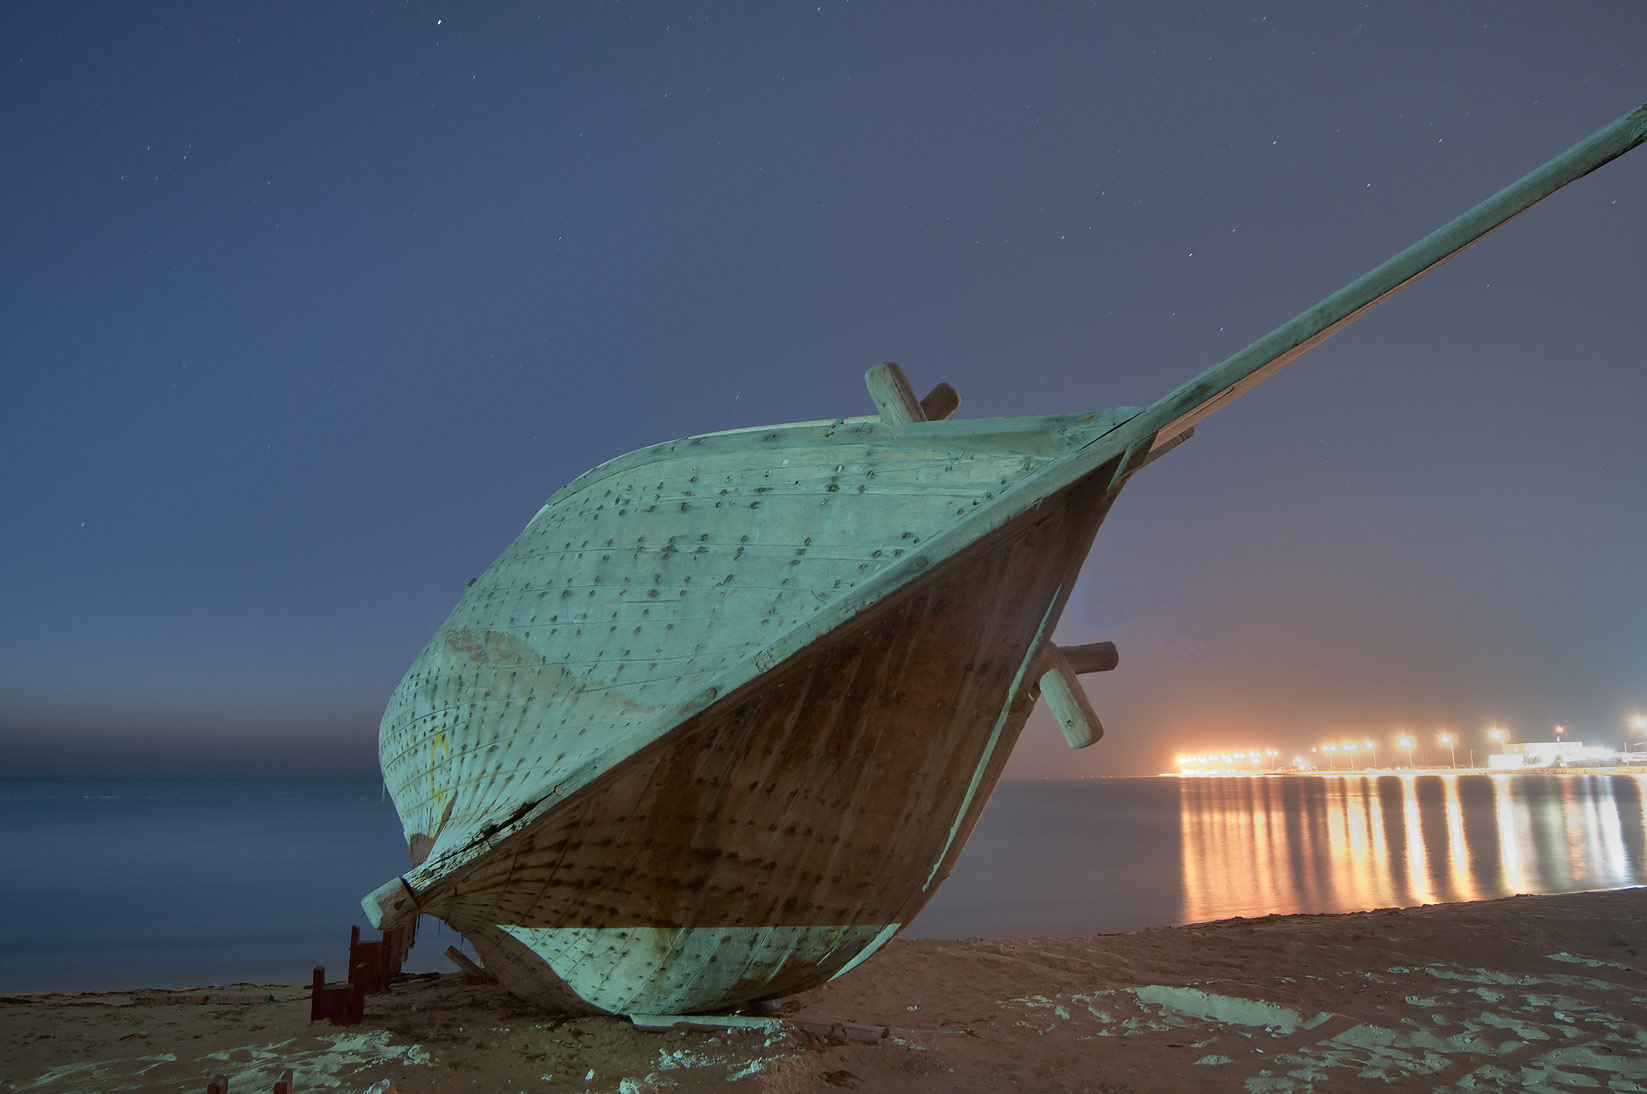 Hull of a fishing boat on a beach near heritage village at morning dusk. Al Wakrah, Qatar